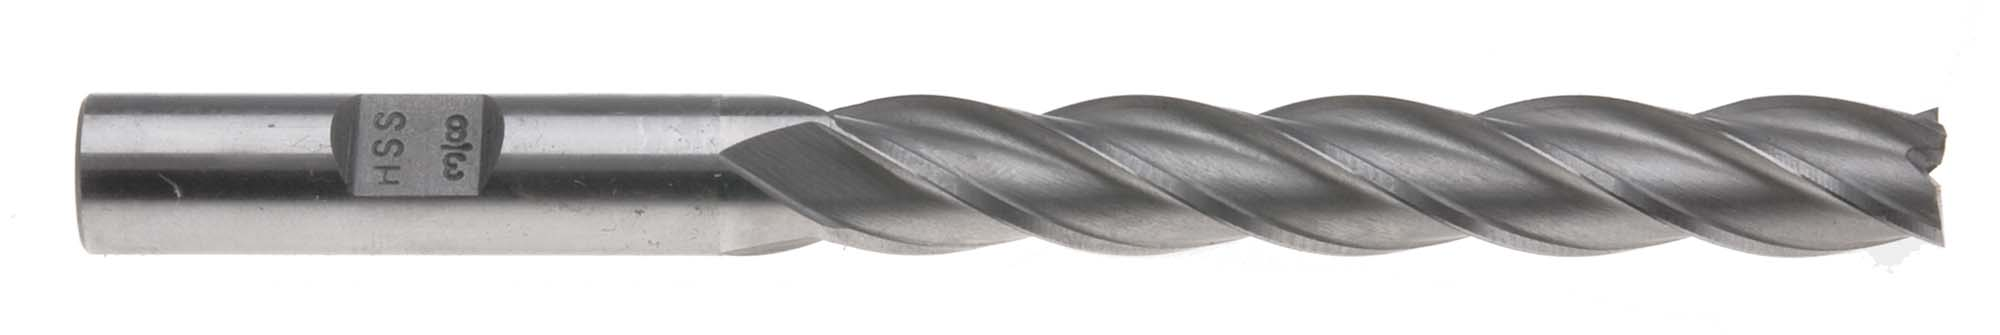 "5/8"" 4 Flute Extra Long Center Cut End Mill - 5/8"" Shank, High Speed Steel"